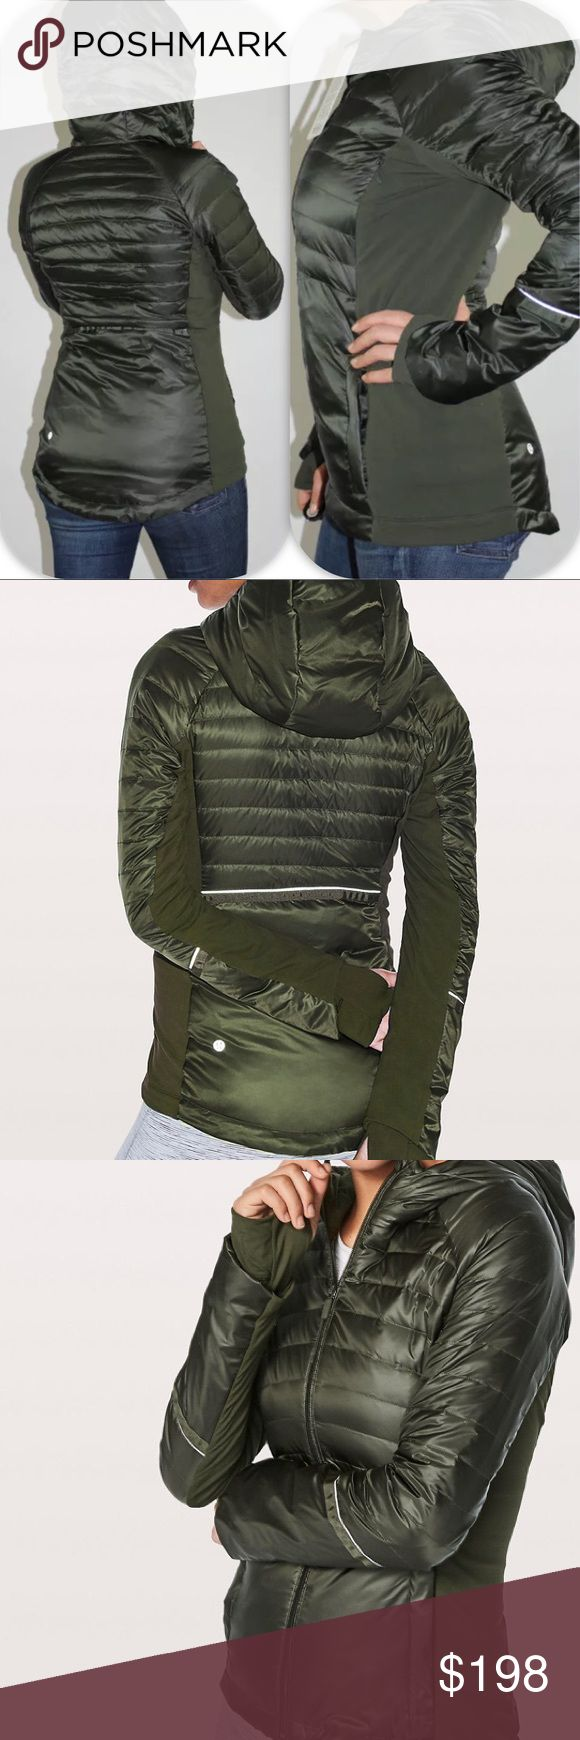 NWT GATOR GREEN LULULEMON DOWN FOR A RUN JACKET 2 Brand: Lululemon athletica down for a run Jacket           Condition: New with tag || Size 2 || gator green   NO  TRADES  NO LOWBALL OFFERS  ⛔️NO RUDE COMMENTS  NO MODELING  ☀️Please don't discuss prices in the comment box. Make a reasonable offer and I'll either counter, accept or decline. lululemon athletica Jackets & Coats